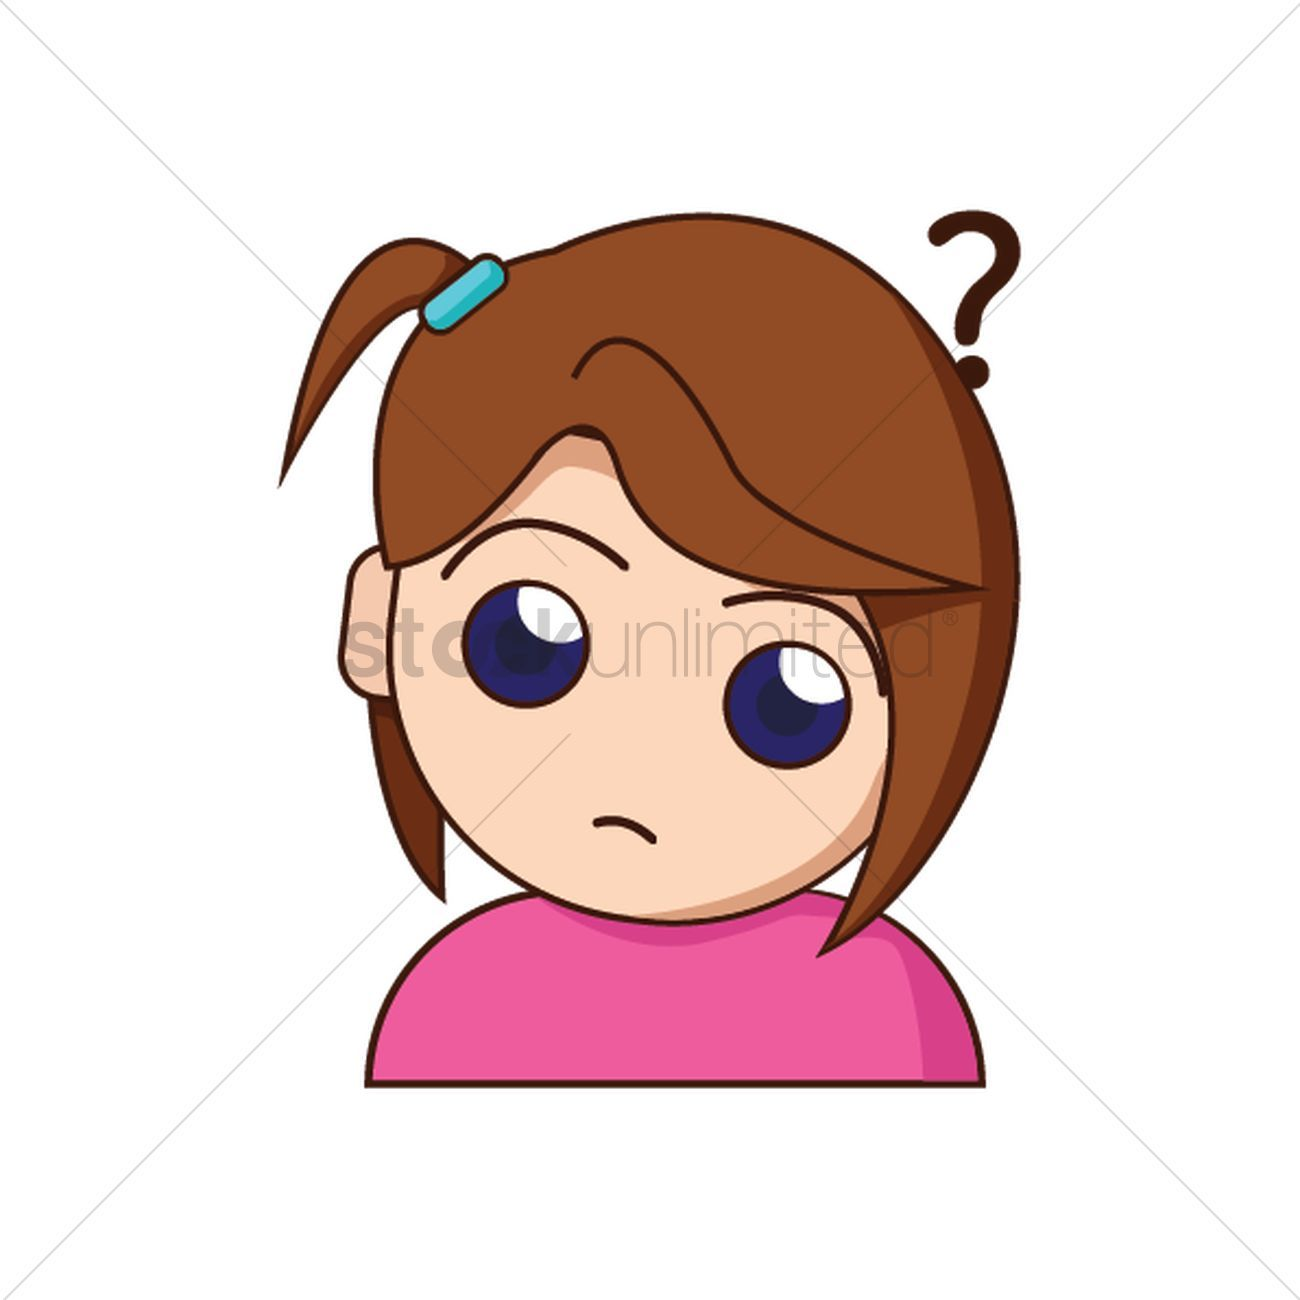 Confused girl clipart 6 » Clipart Portal.